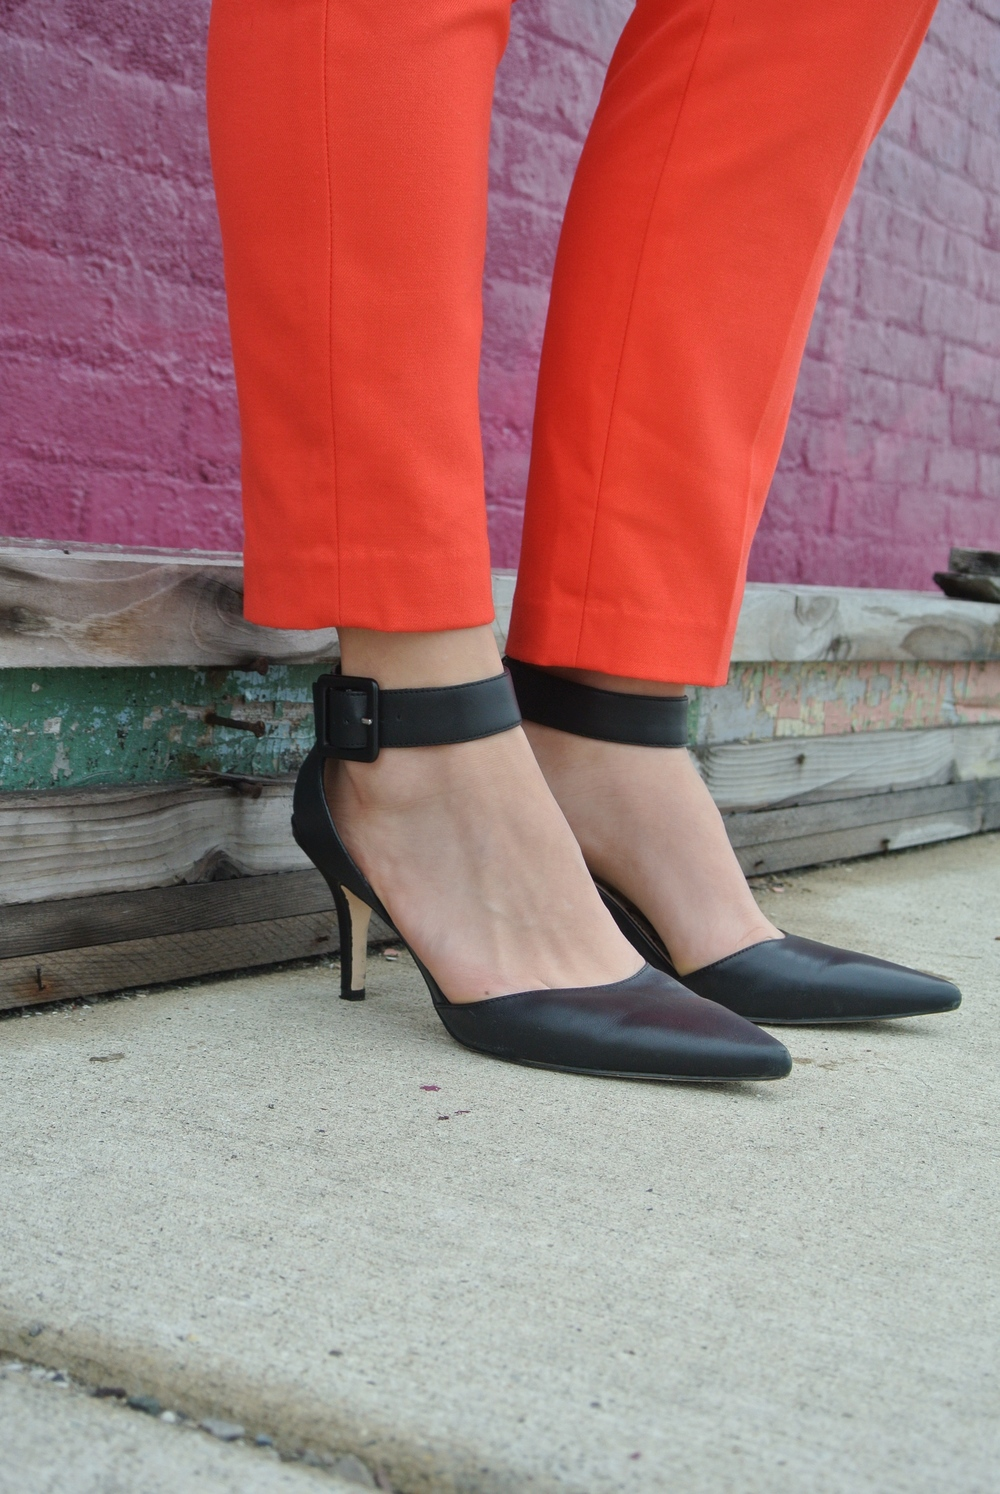 cropped pants and heels